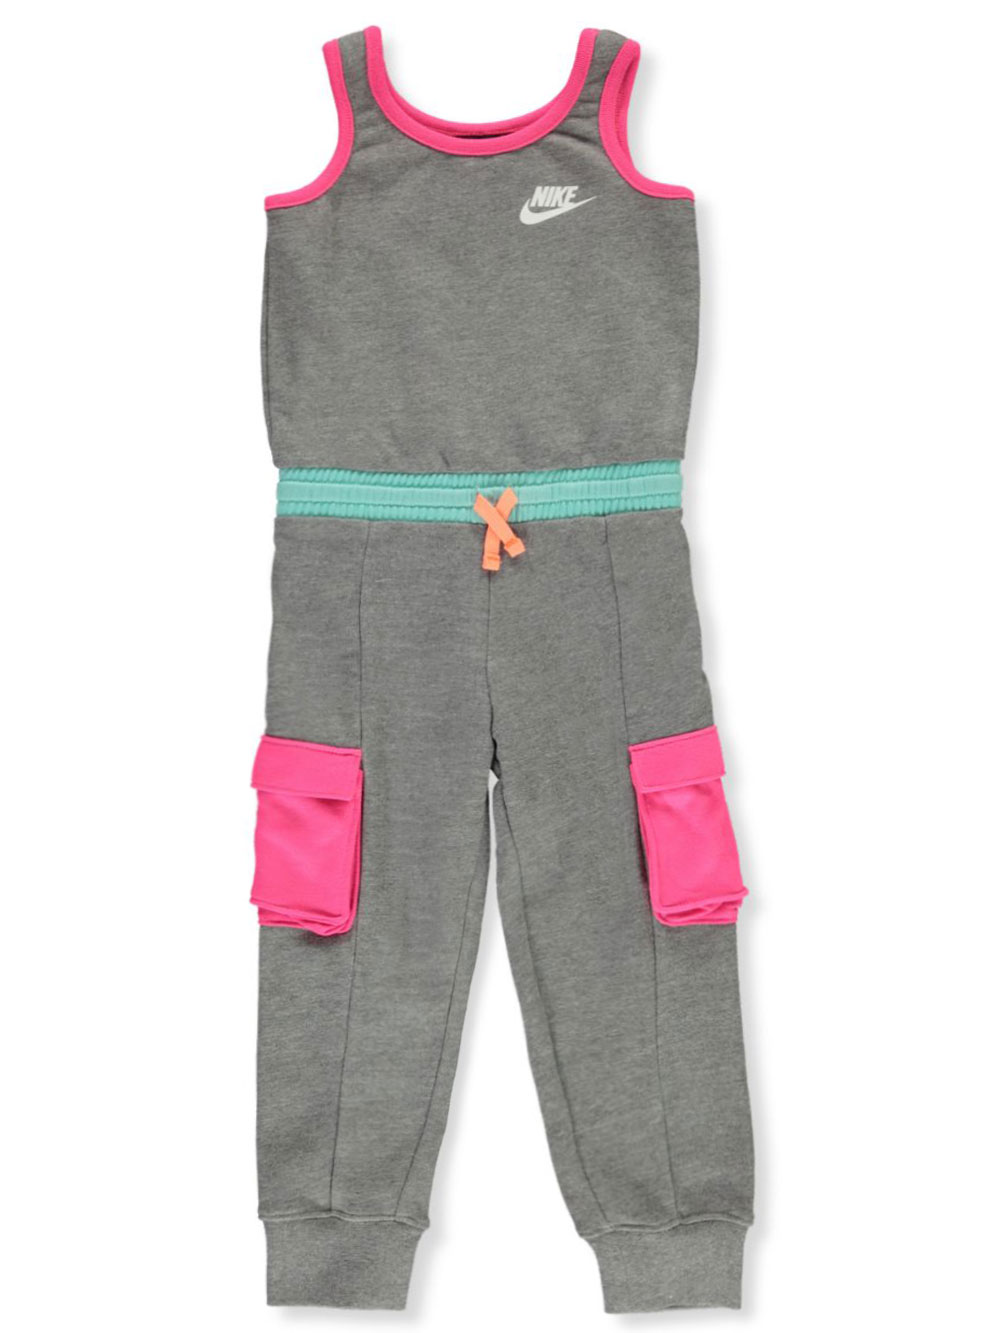 Size 6 Rompers Jumpsuits for Girls